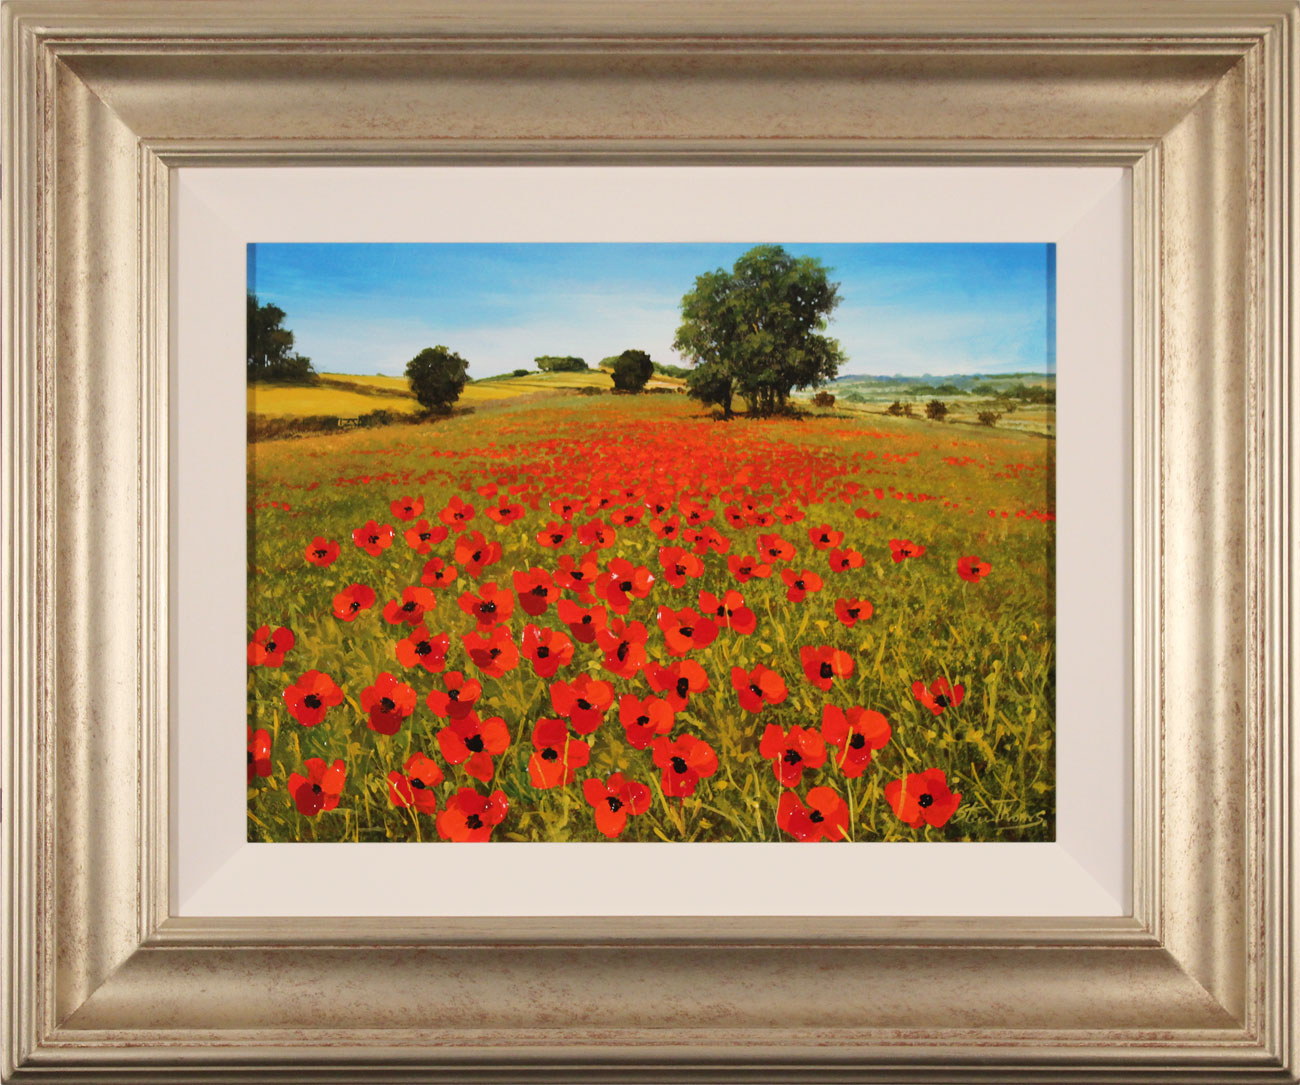 Steve Thoms, Original oil painting on panel, Poppy Fields, Yorkshire Wolds, click to enlarge